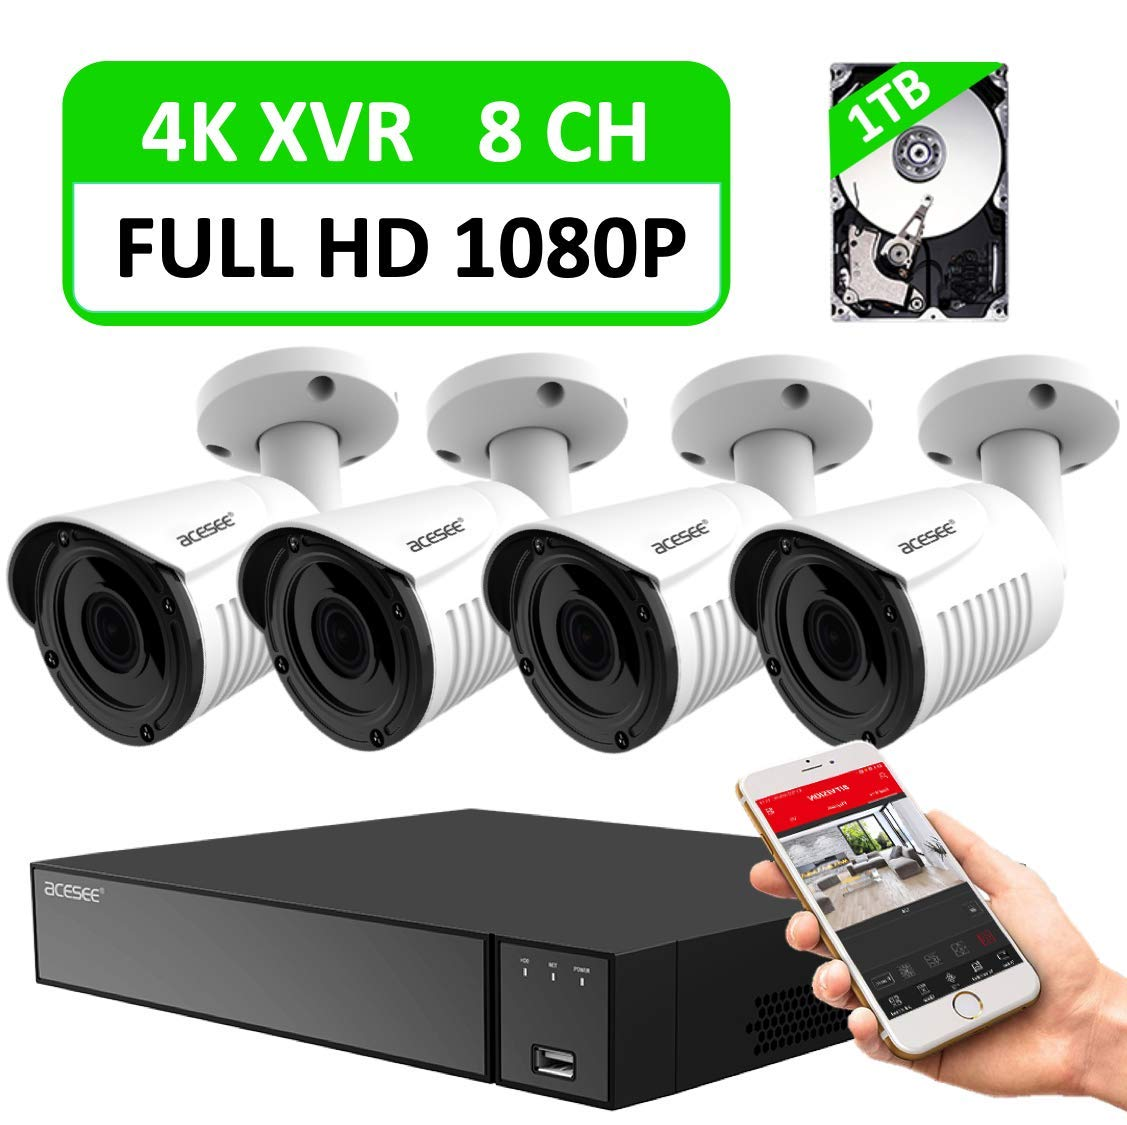 8CH Home Security Camera System with 4K Wired DVR and 4pcs 1080P Indoor Outdoor Surveillance Bullet CCTV Cameras with Weatherproof/Night Vision/Motion Alert/Easy Remote Access/Include 1TB Hard Drive by acesee